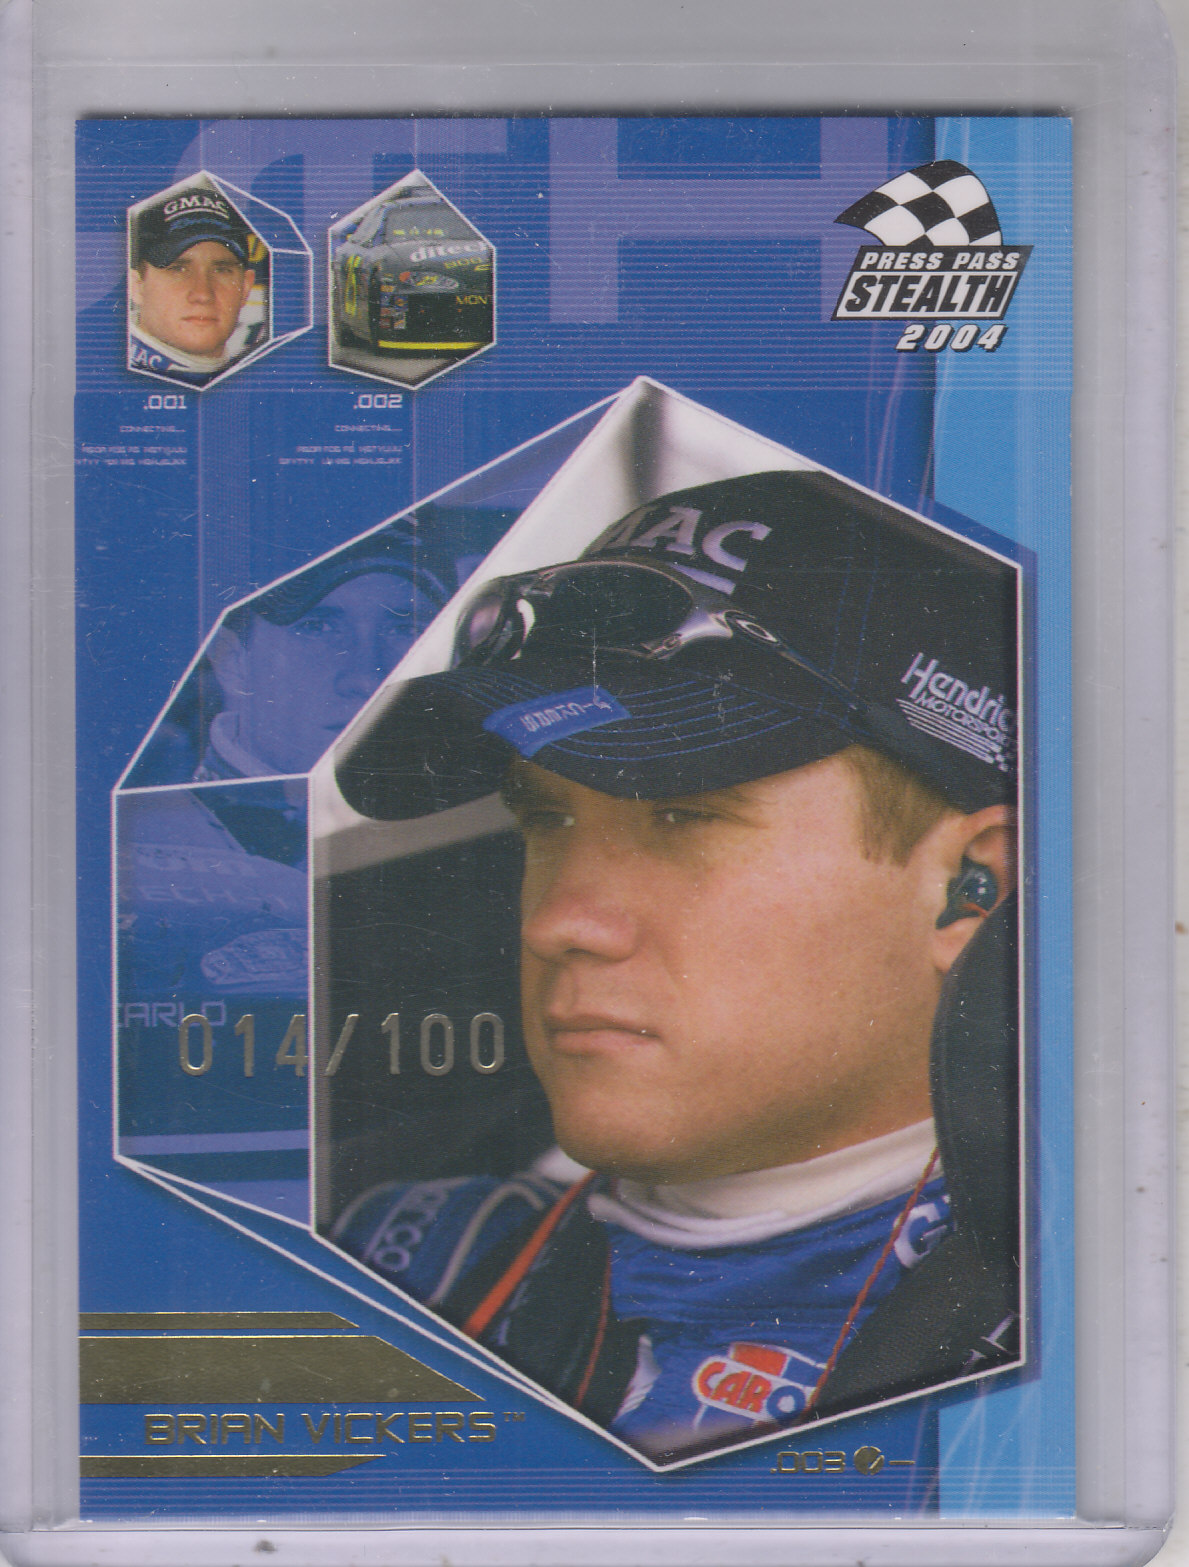 2004 Press Pass Stealth X-Ray #24 Brian Vickers